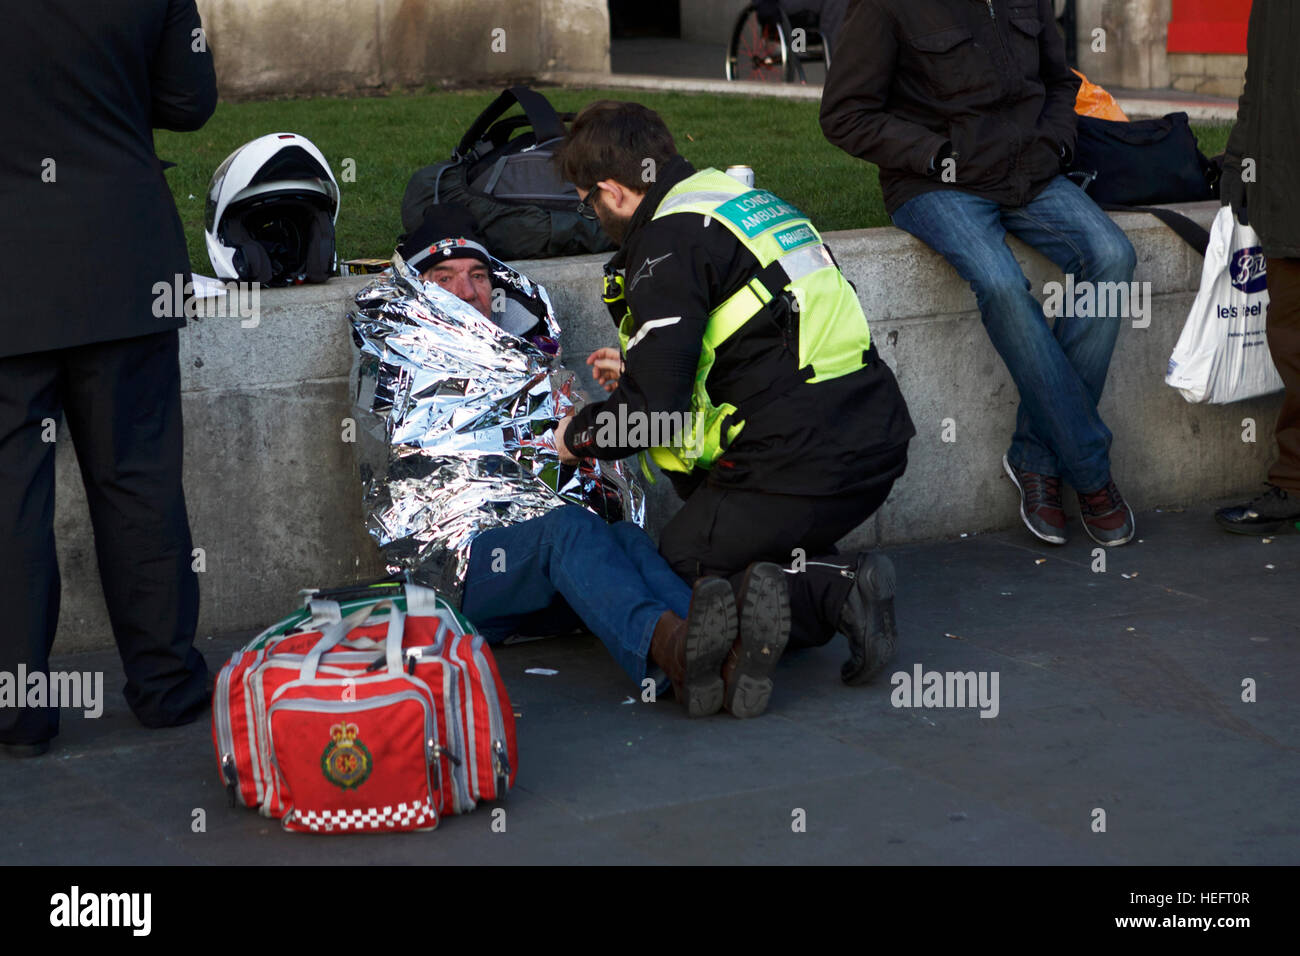 Hypothermia and elderly. London Ambulance Paramedic. Hypothermia blanket Medical assistance UK. Cold weather. Homeless - Stock Image